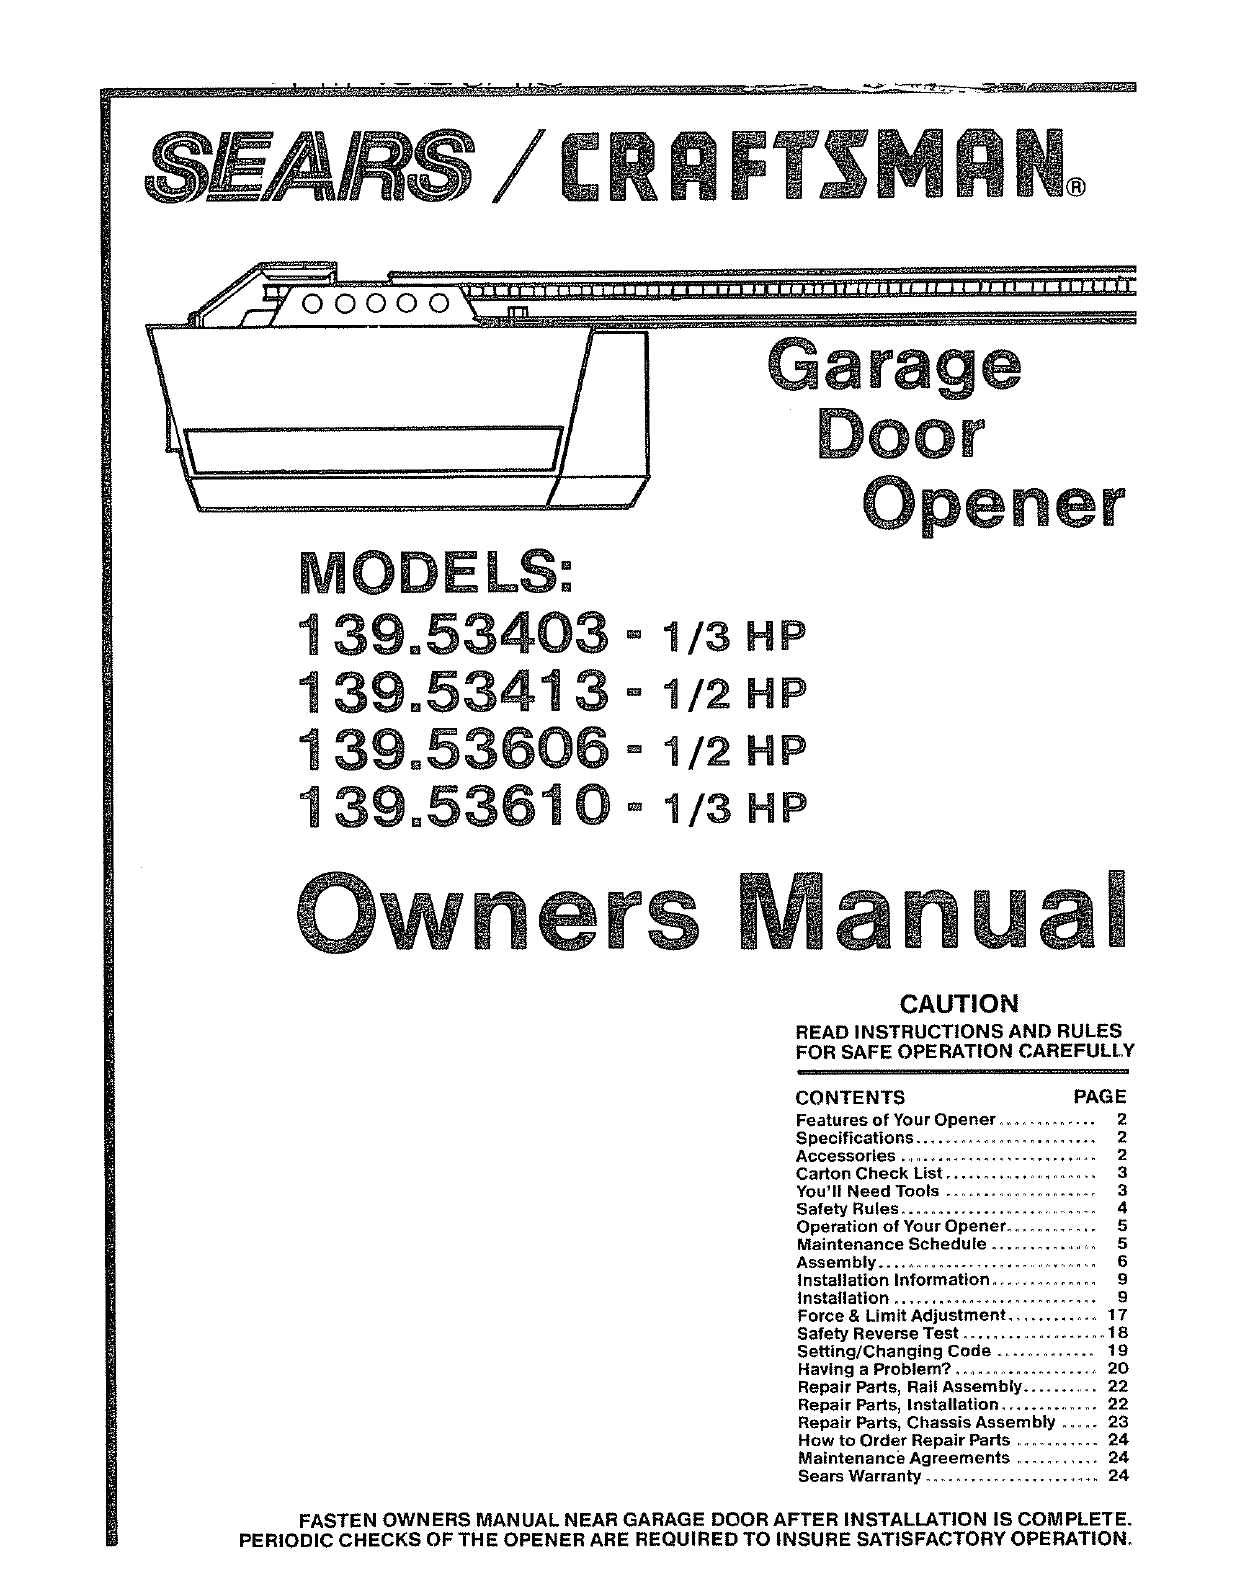 4e24e83f 95d3 4892 ae01 8deb09c598a8 bg1 craftsman garage door opener 139 53403 user guide manualsonline com garage door opener wiring diagram at edmiracle.co